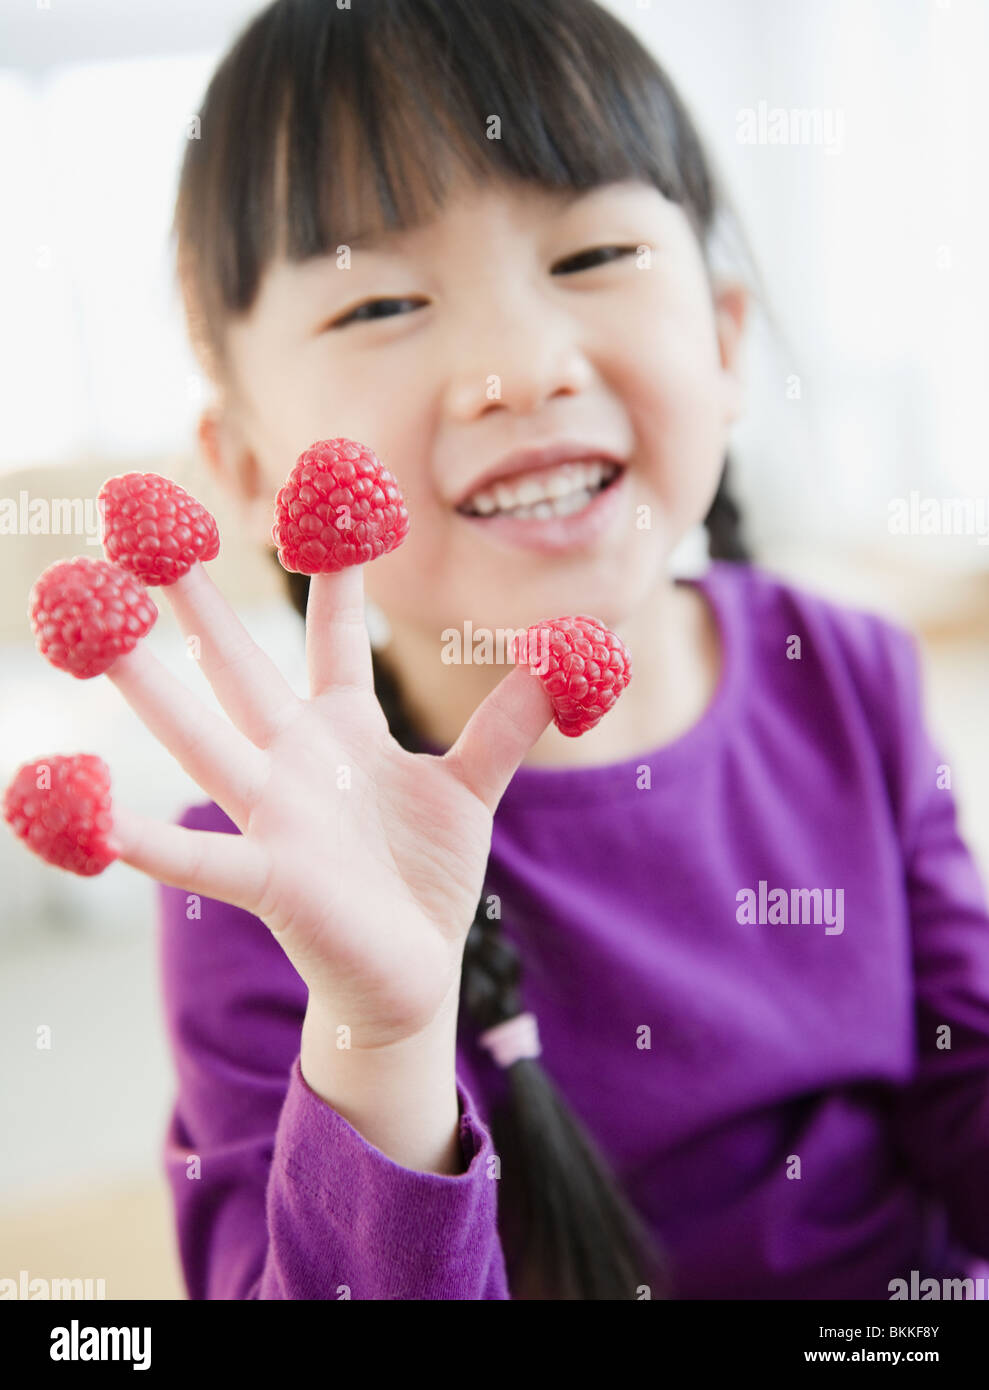 Chinese girl with raspberries on fingers Stock Photo